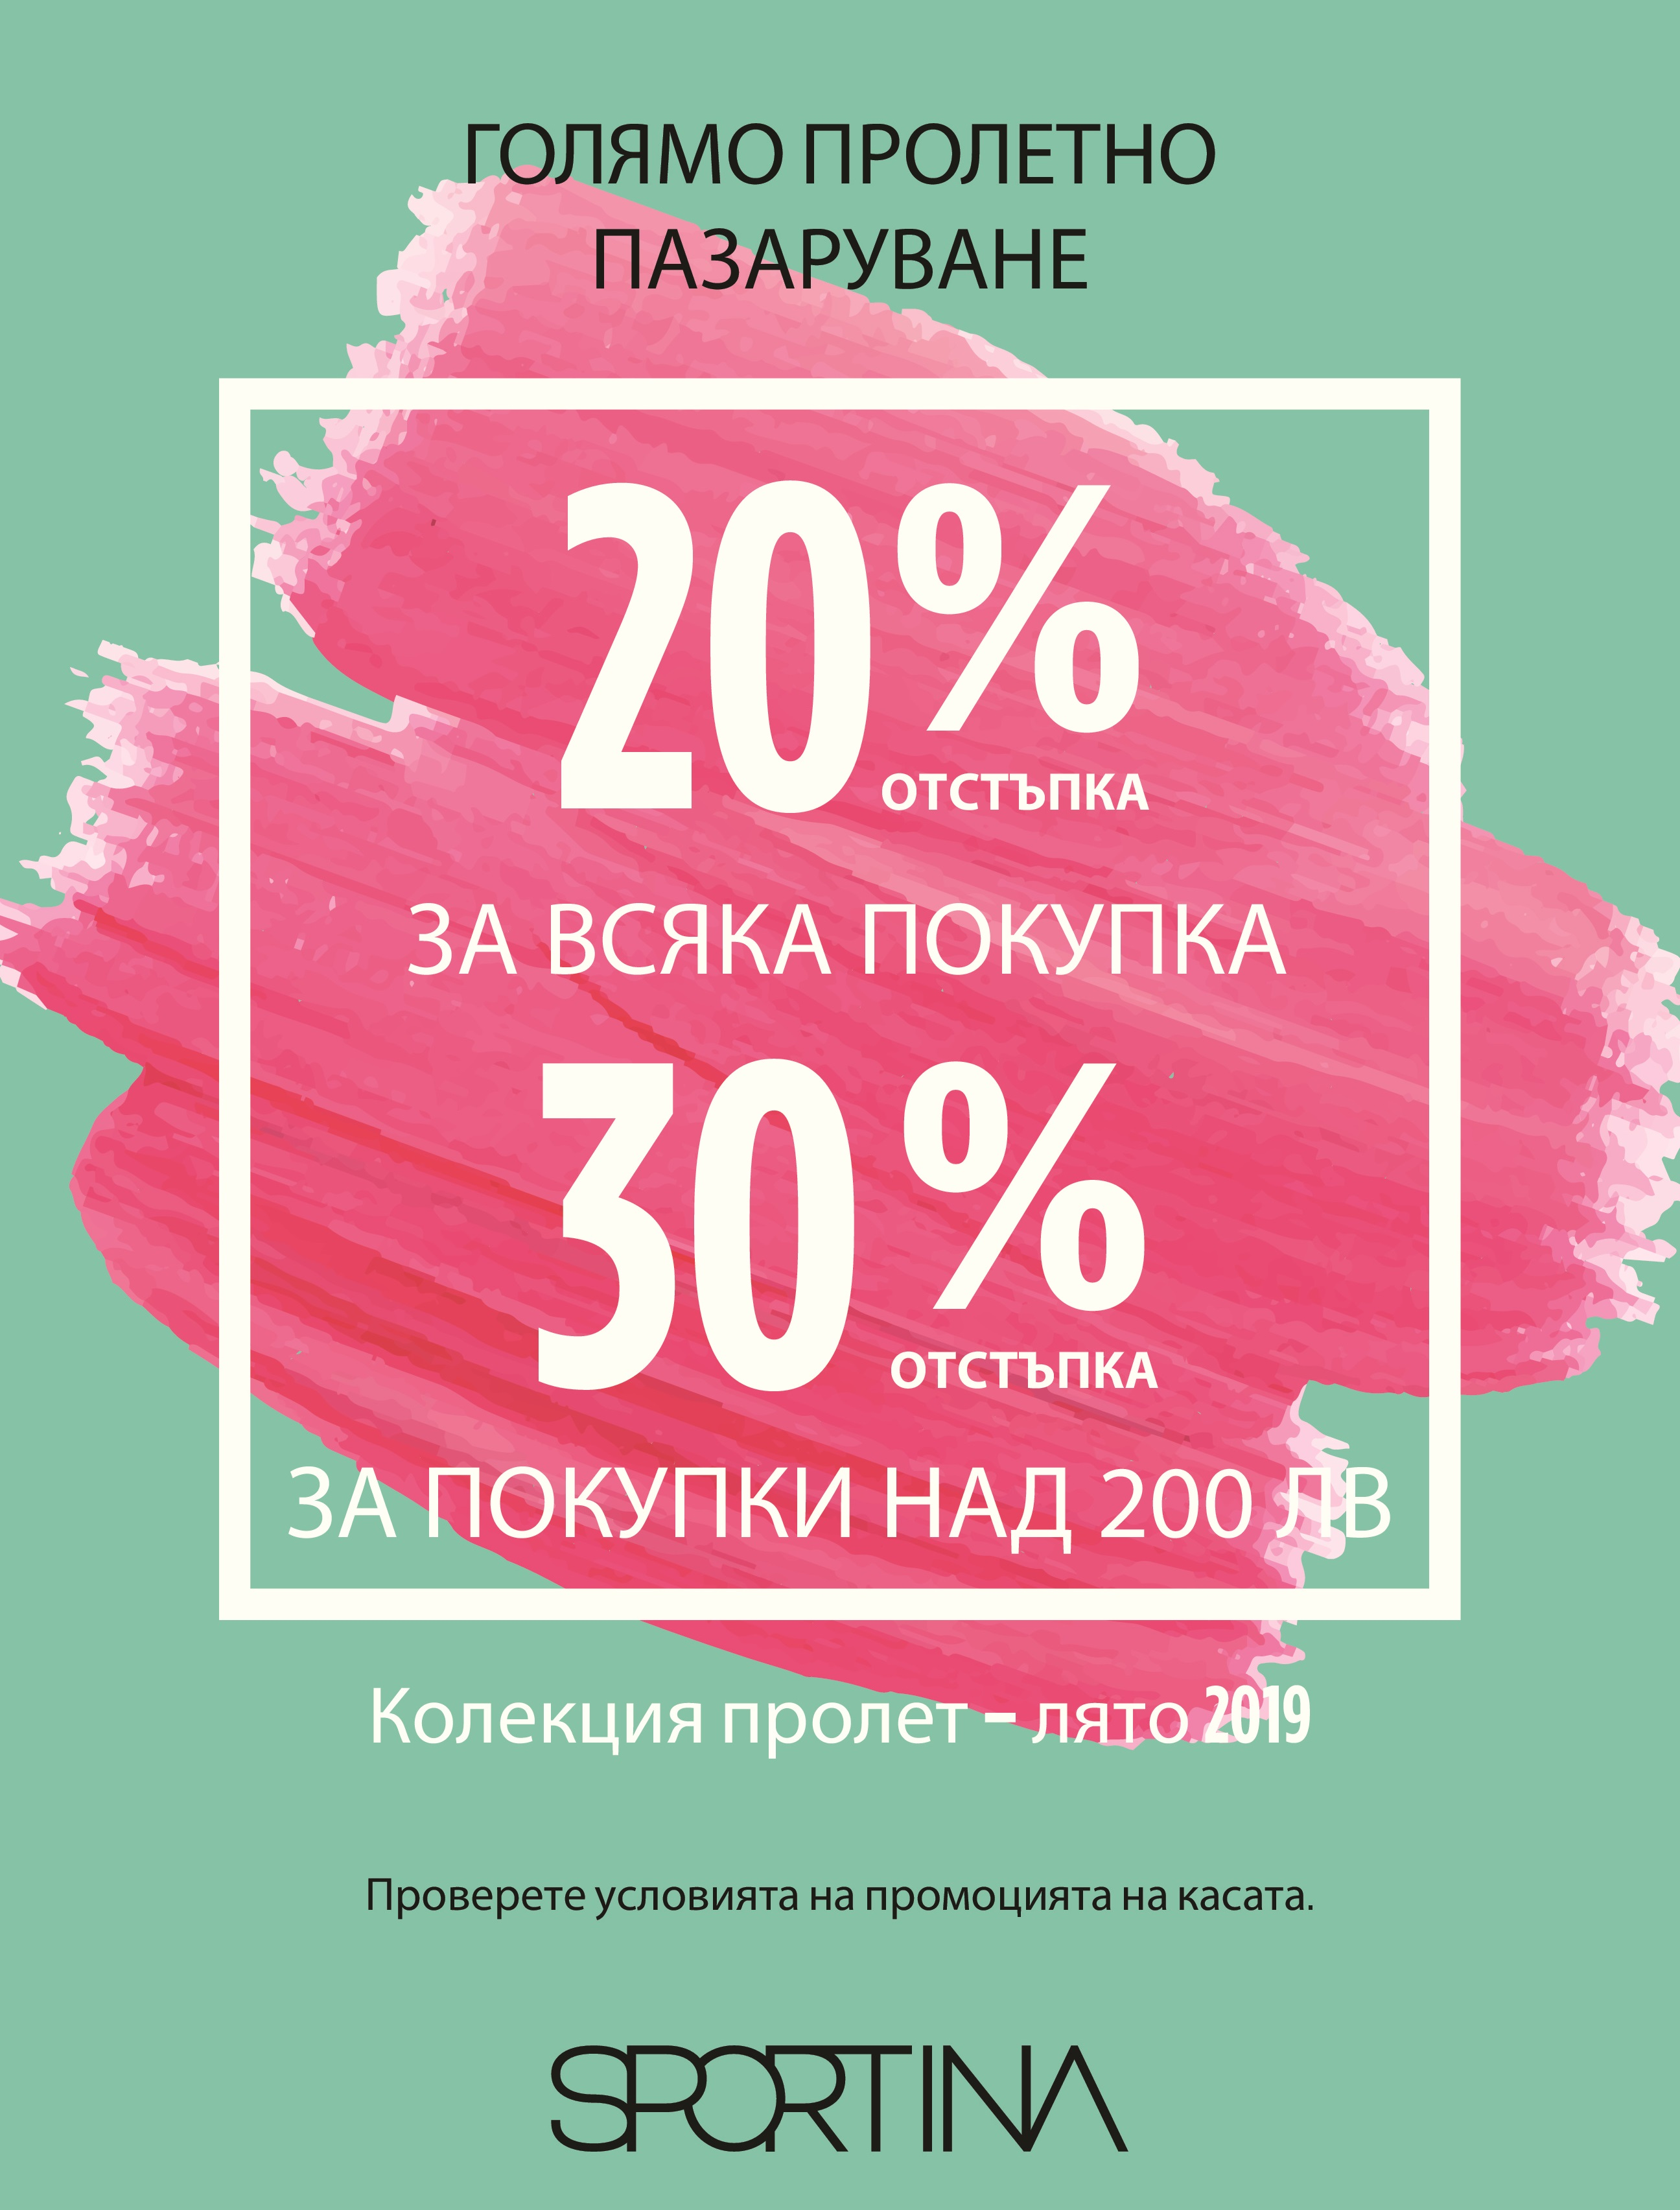 Take Advantage of This Special Offer from SPORTINA